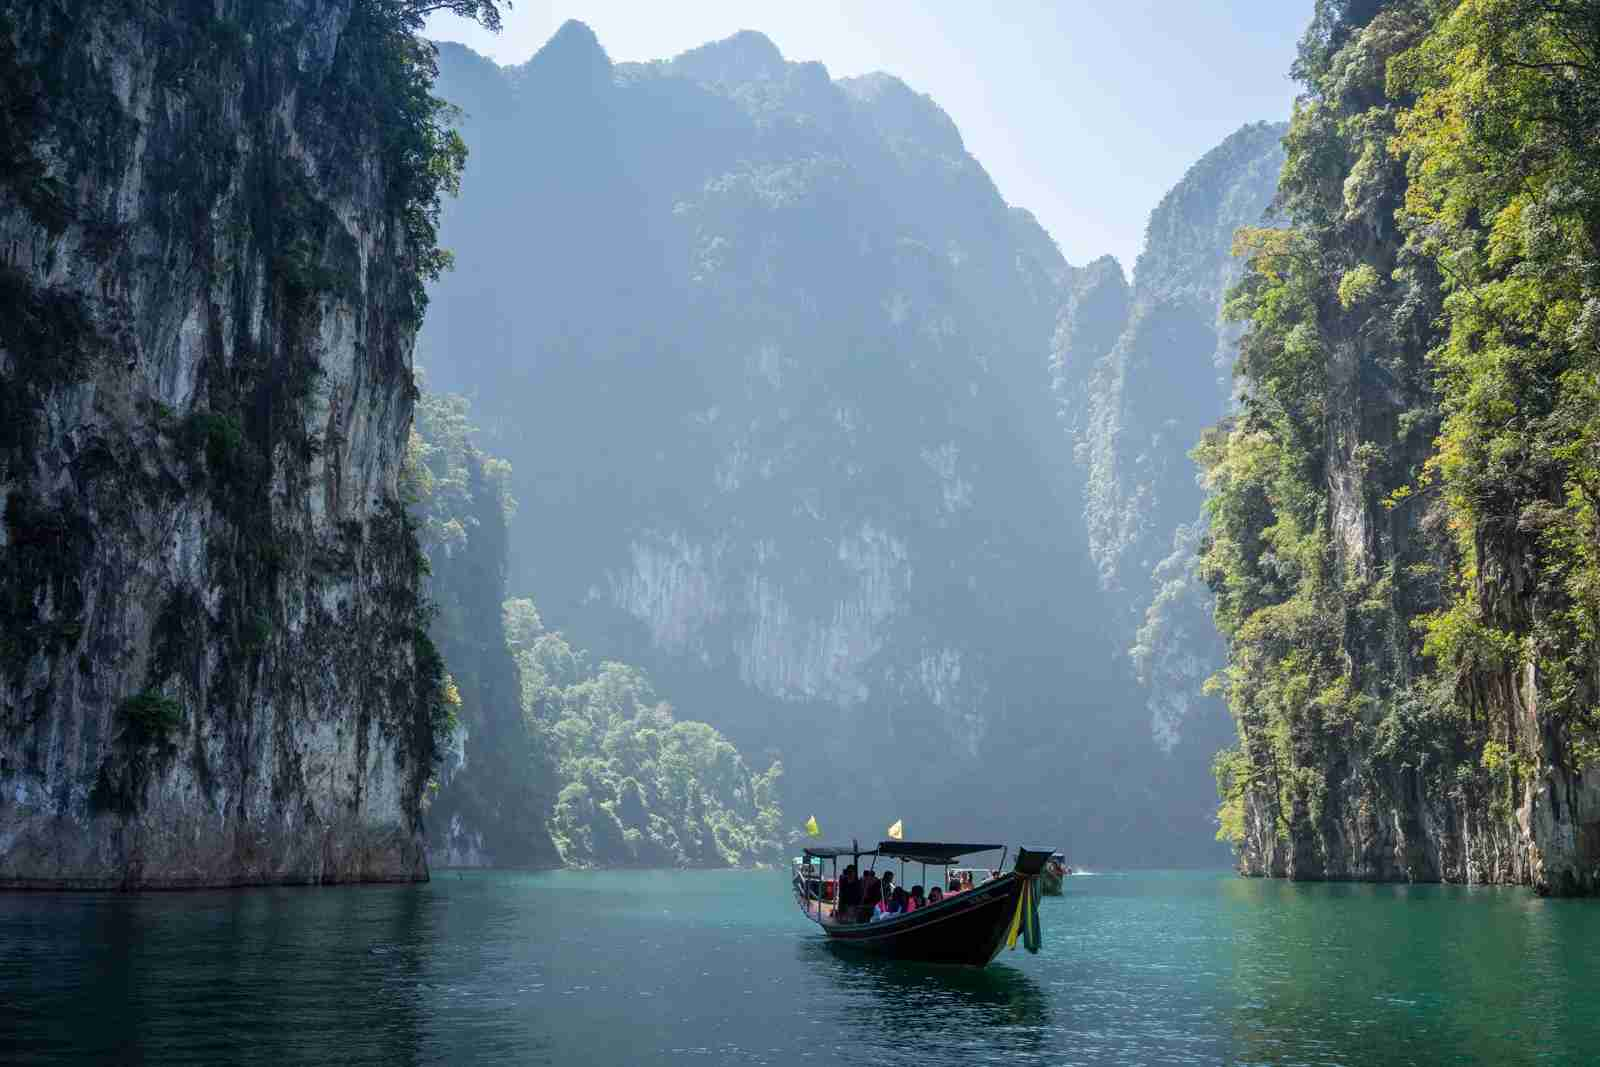 Khao Sok National Park, Thailand. (Photo by Robin Noguier / Unsplash)